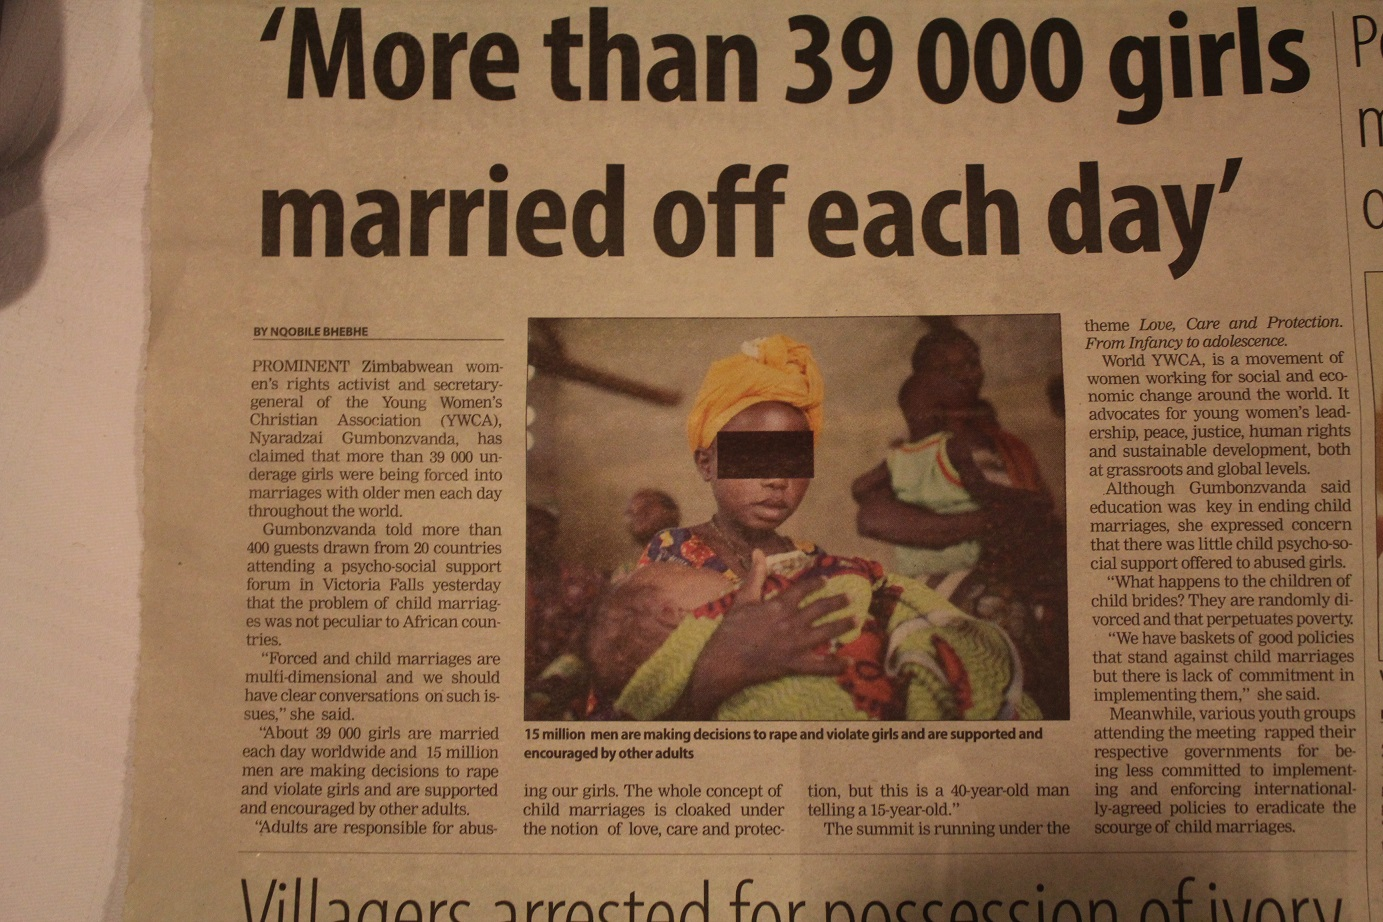 More than 39,000 girls married off each day